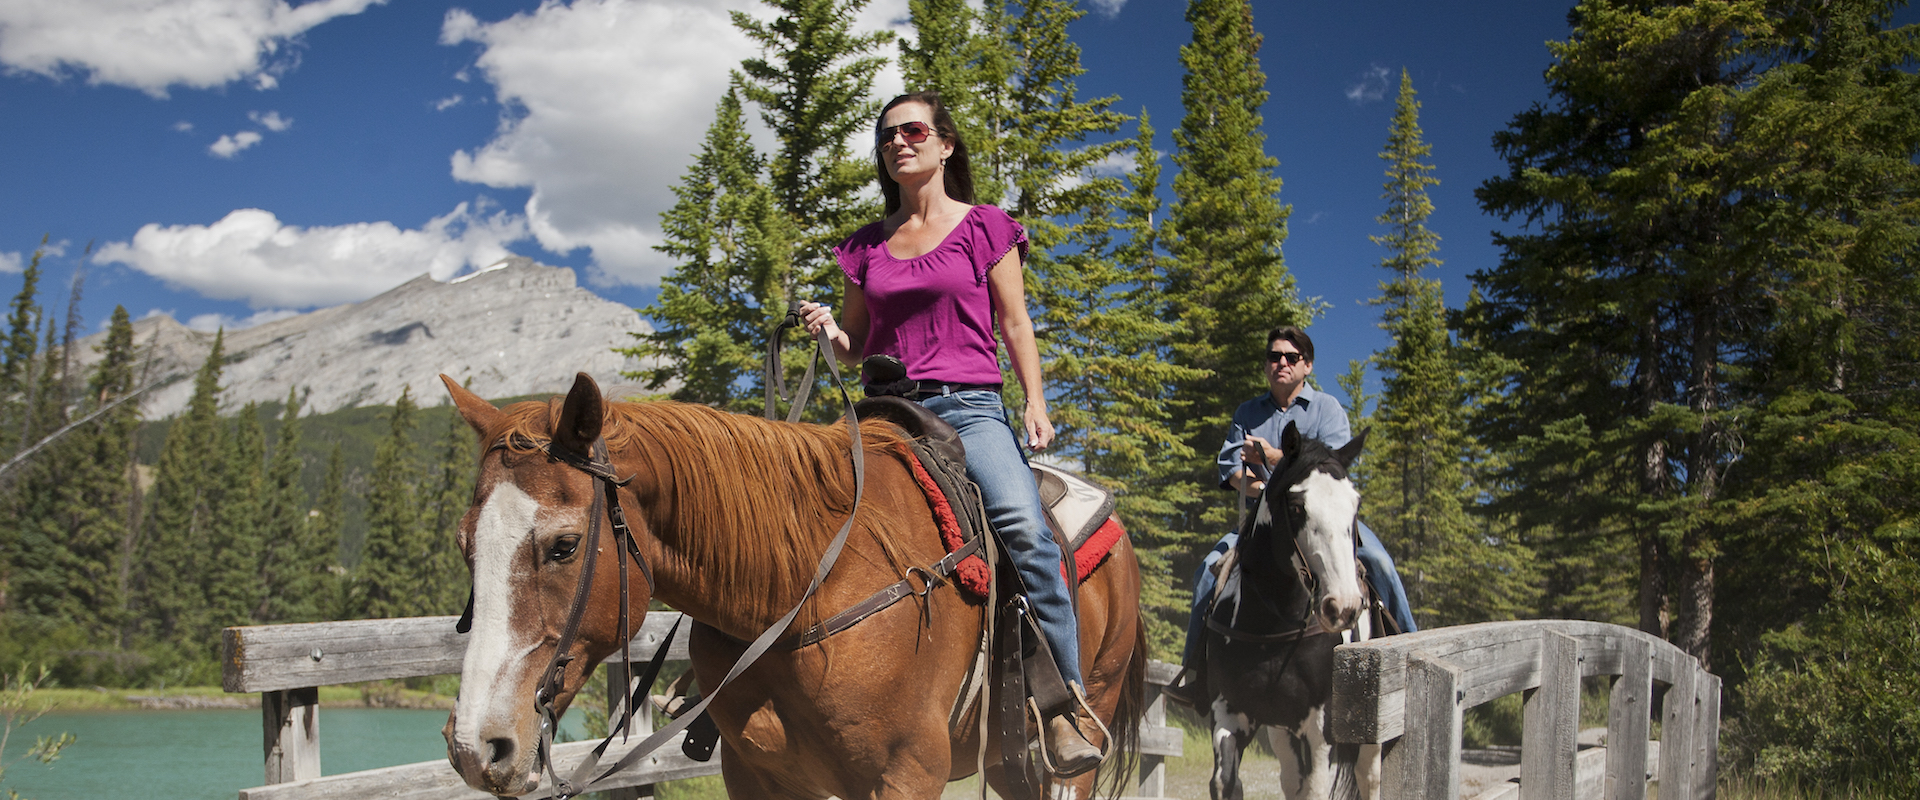 Hourly rides and backcountry horseback vacations